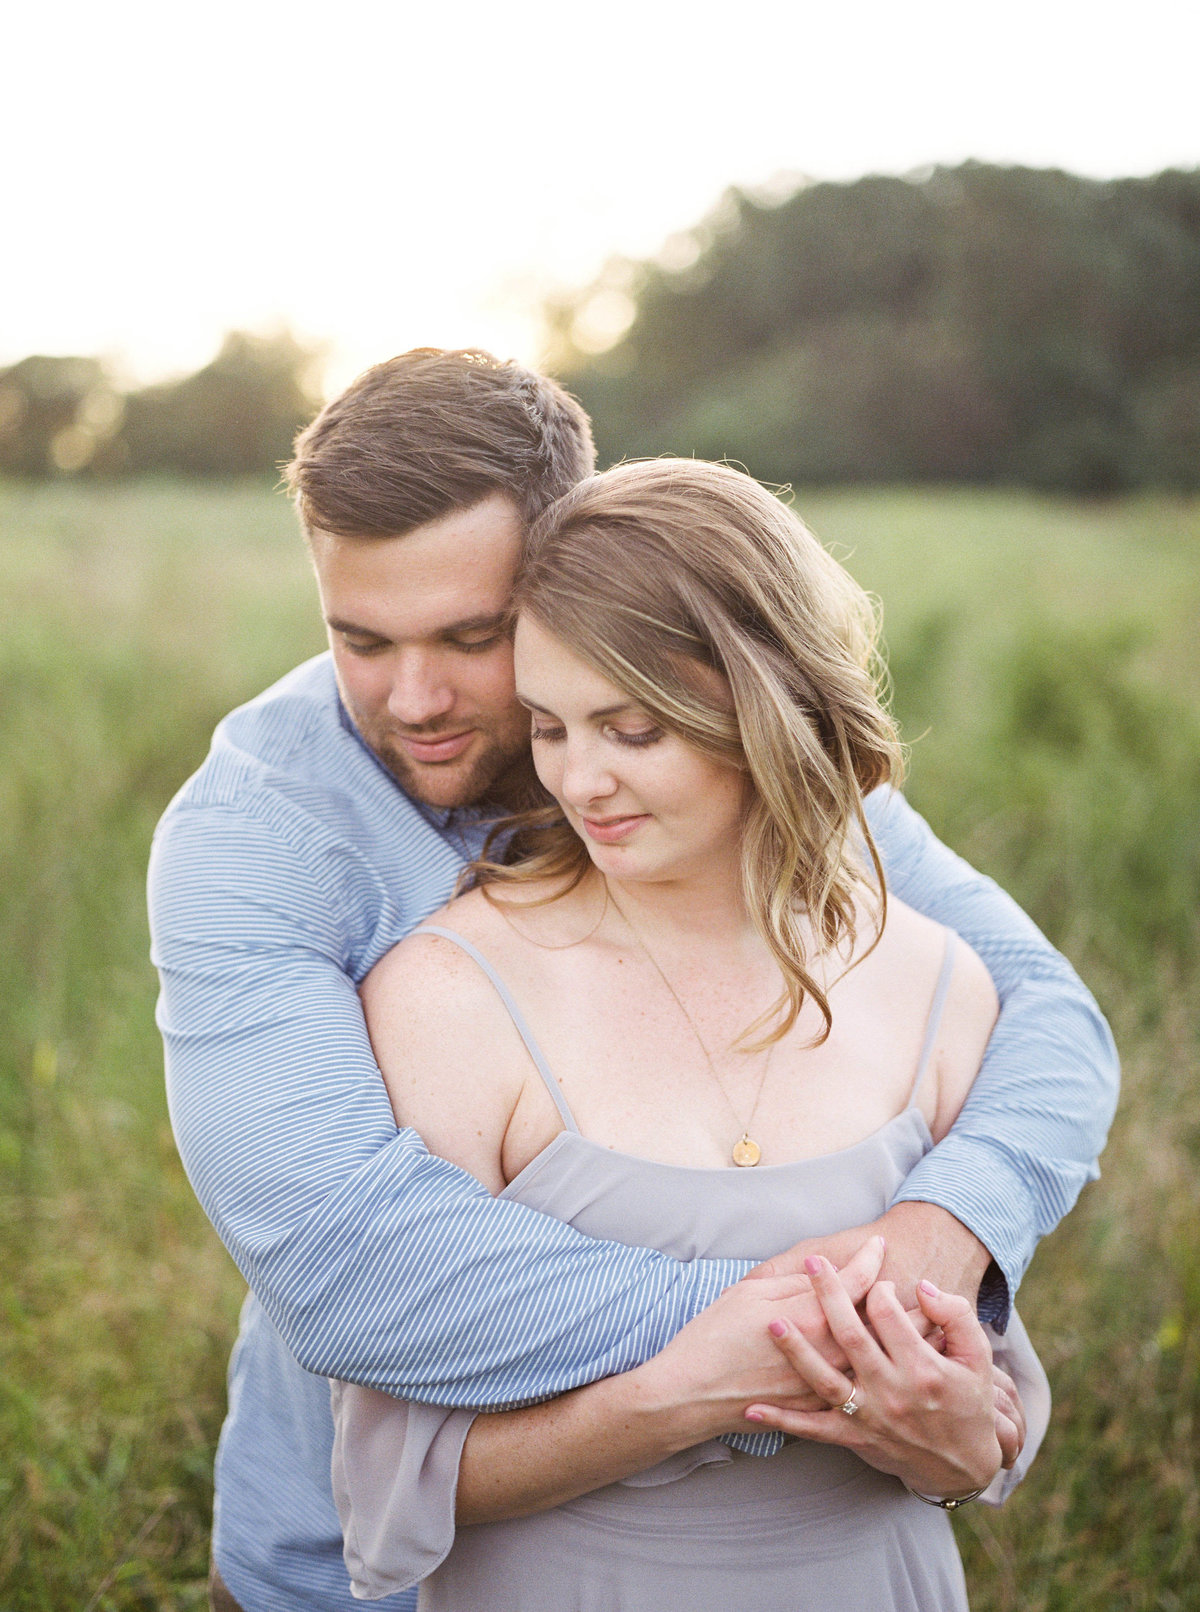 stepping stone museum, maryland engagement photographer, fine art maryland wedding photographer-29